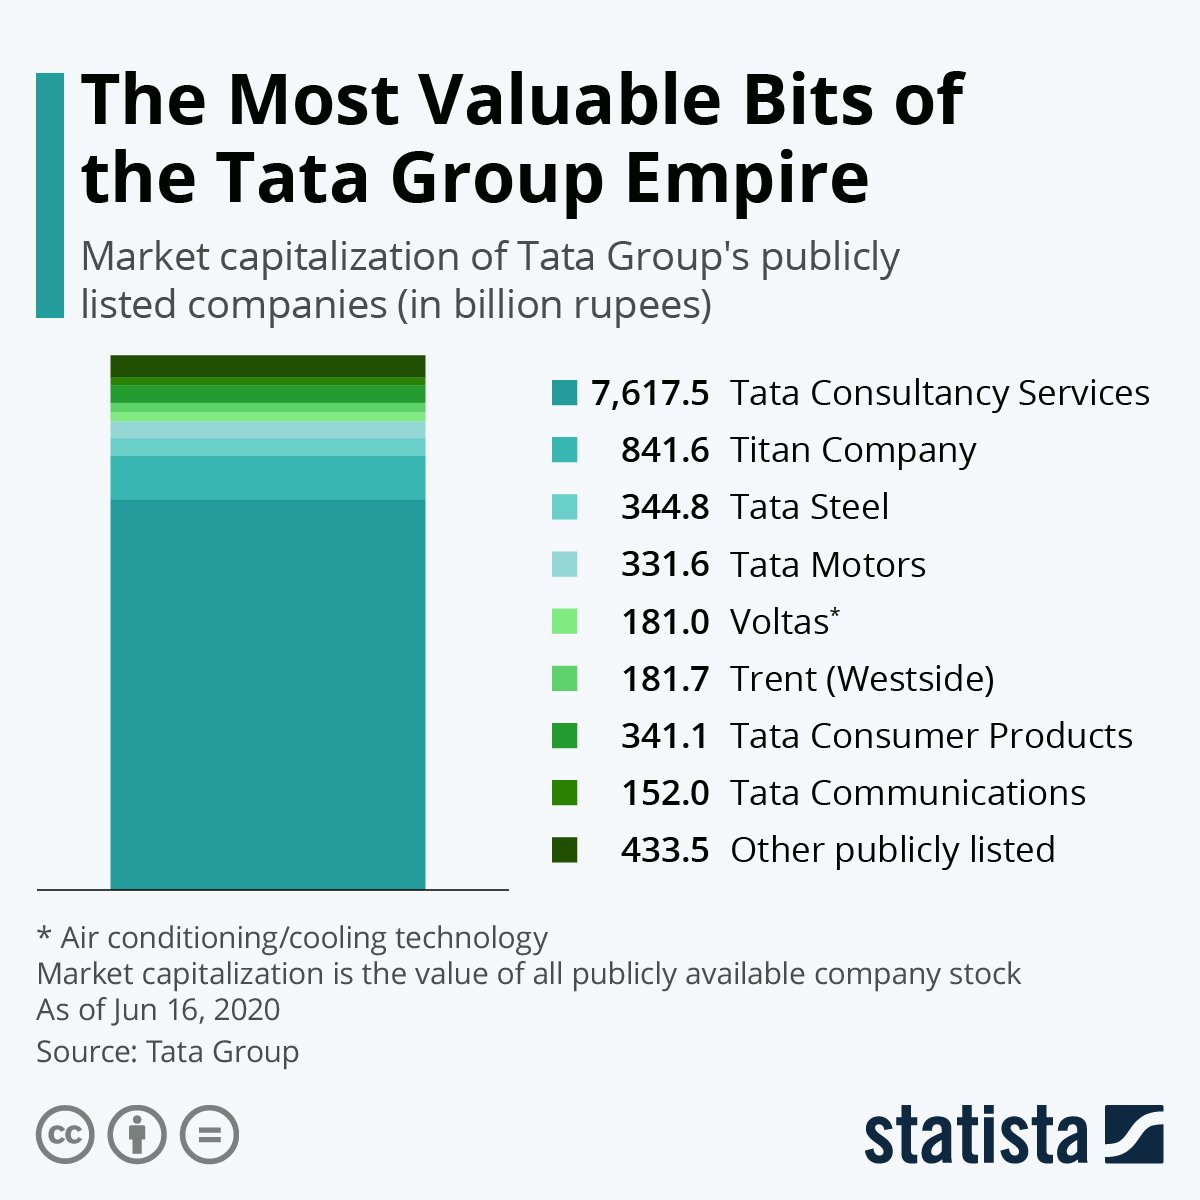 The Tata empire and its most valuable bits